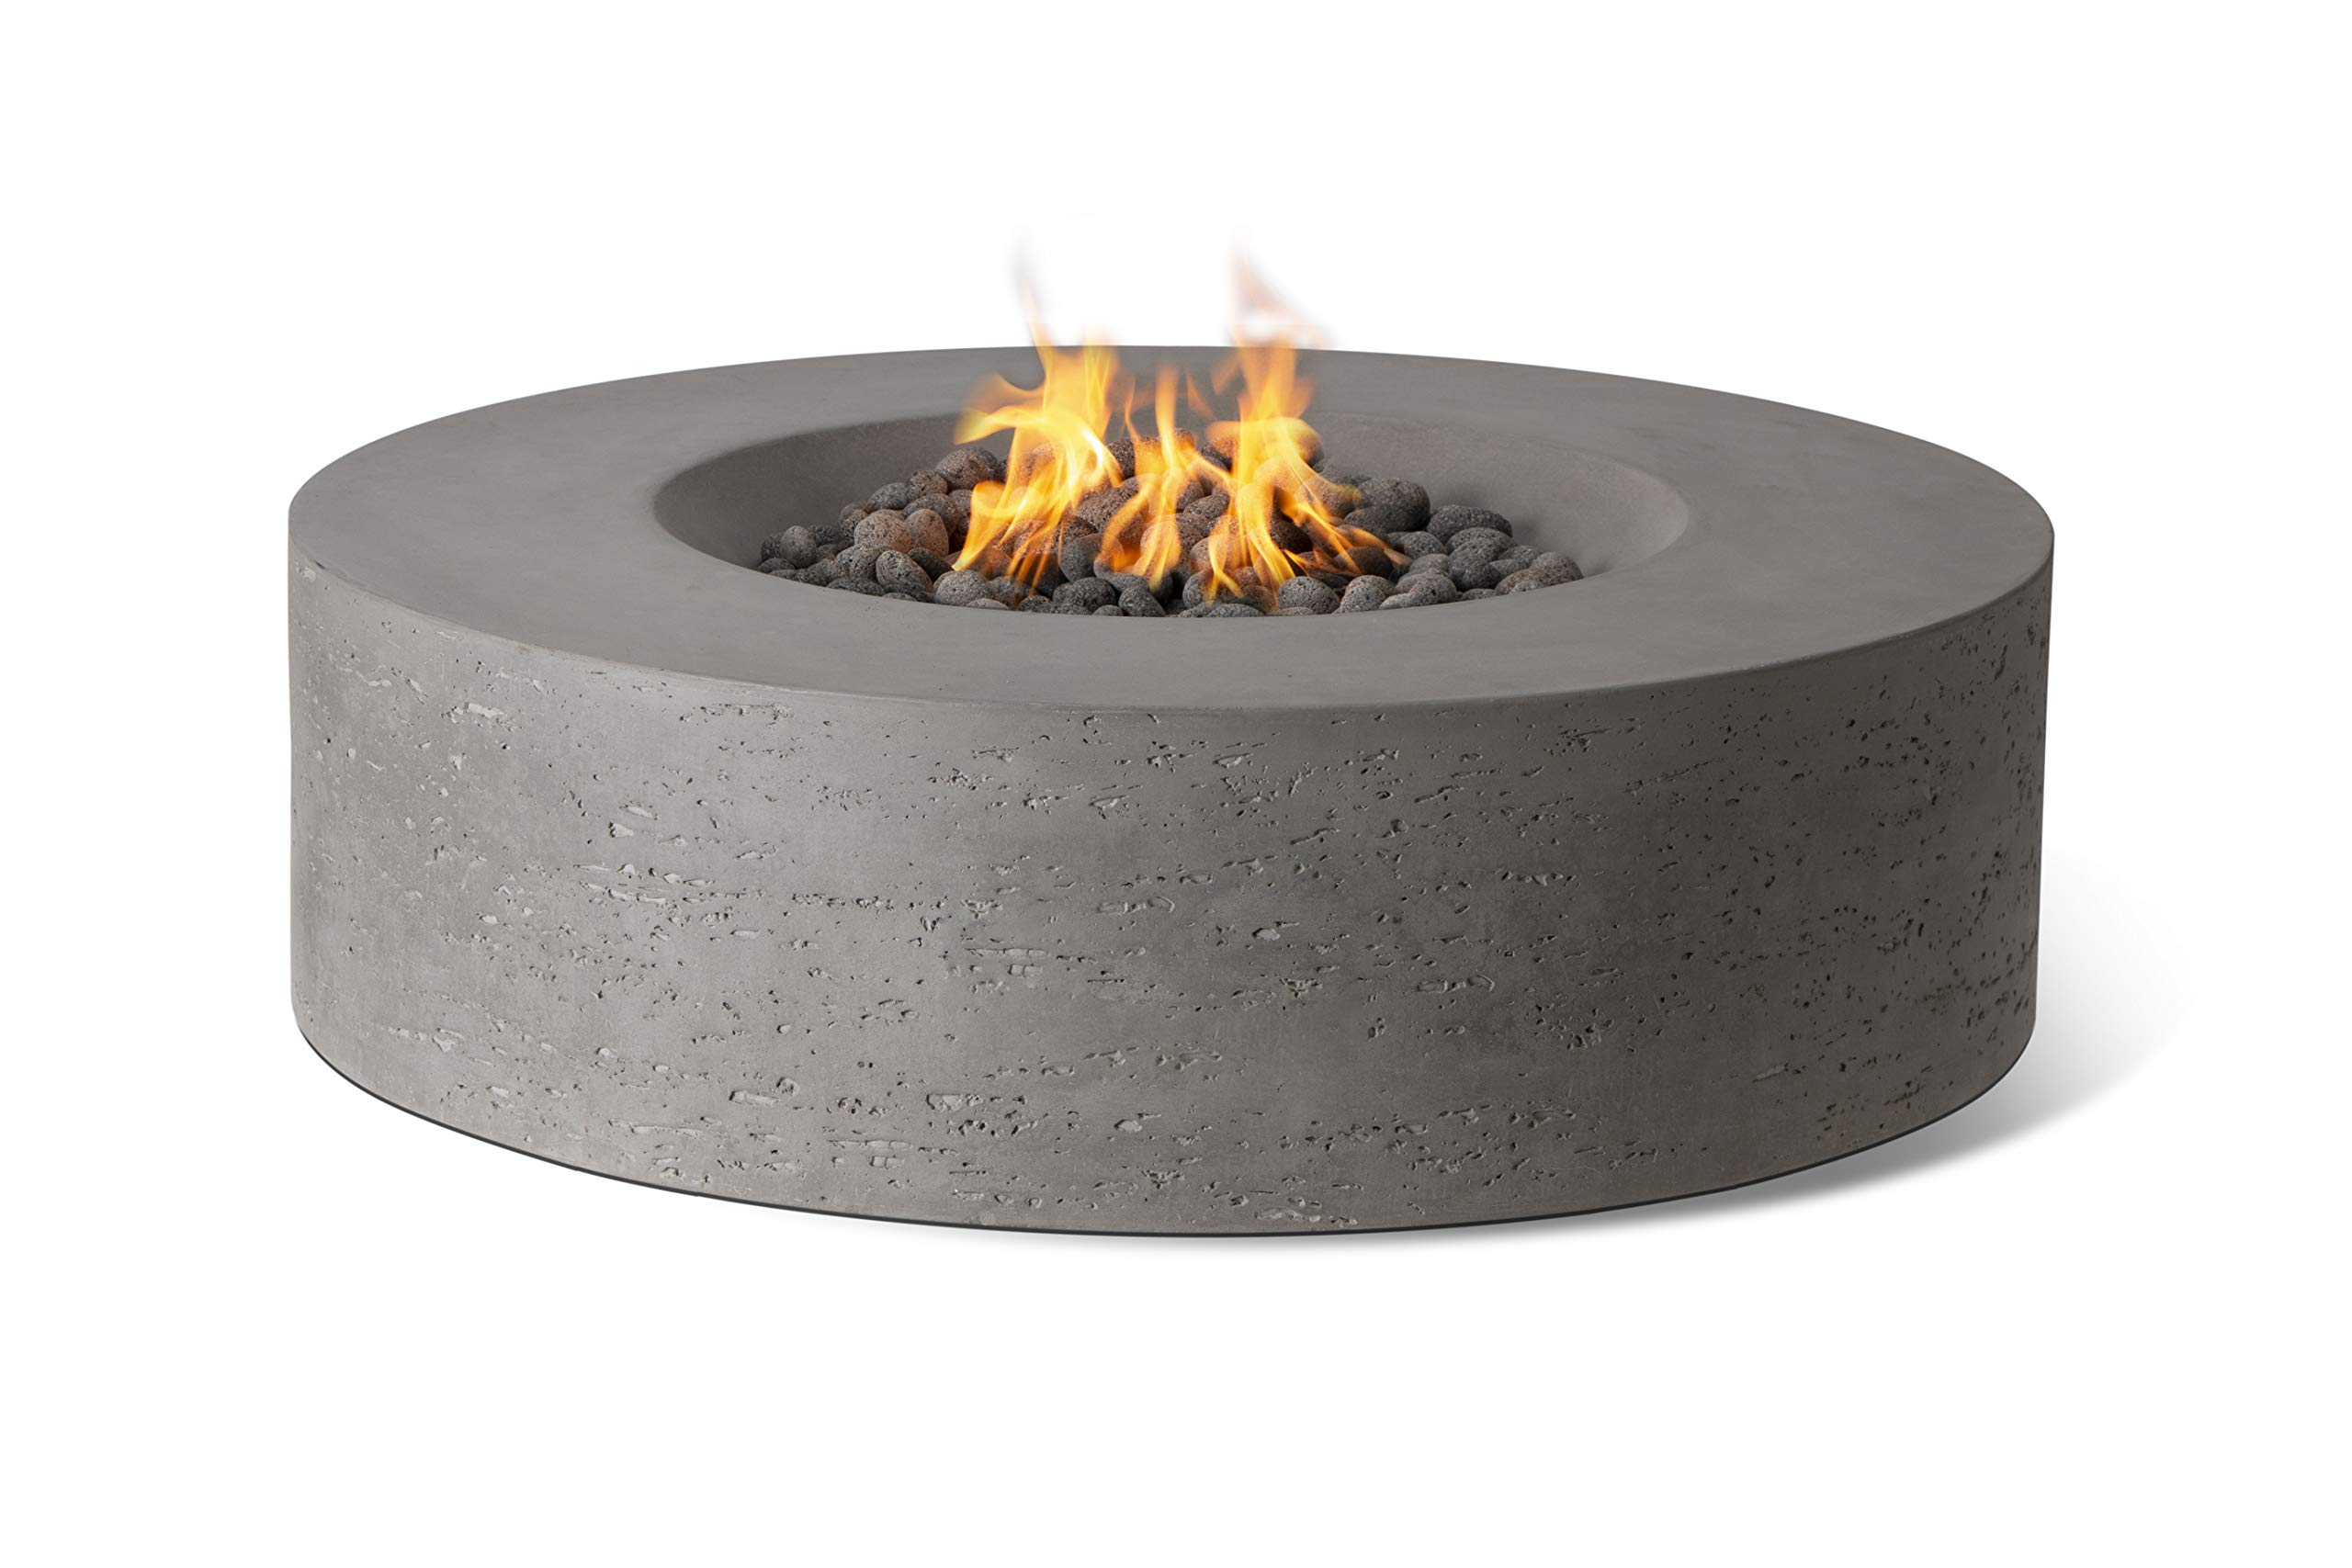 Pyromania Genesis Outdoor Fire Table, Fire Pit Table. Hand Crafted from High Performance Concrete. 60,000 BTU Stainless Steel Burner with Electronic Ignition - Natural Gas (Slate Grey)